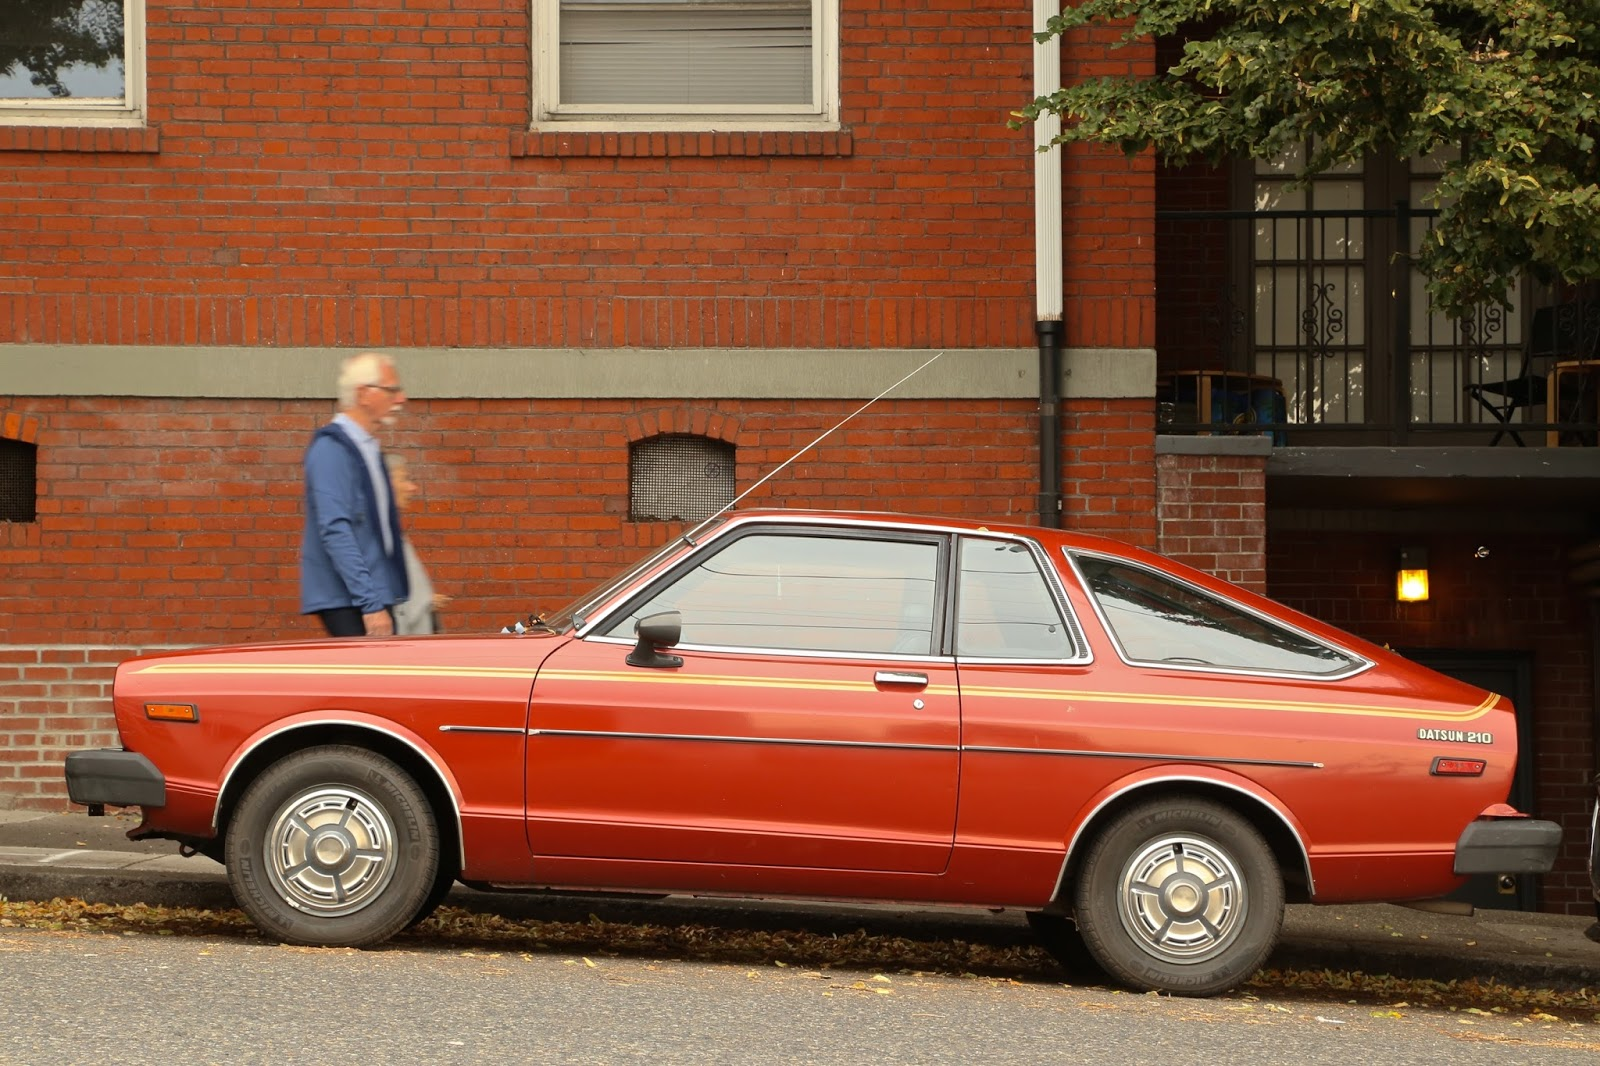 OLD PARKED CARS.: 1979 Datsun 210.